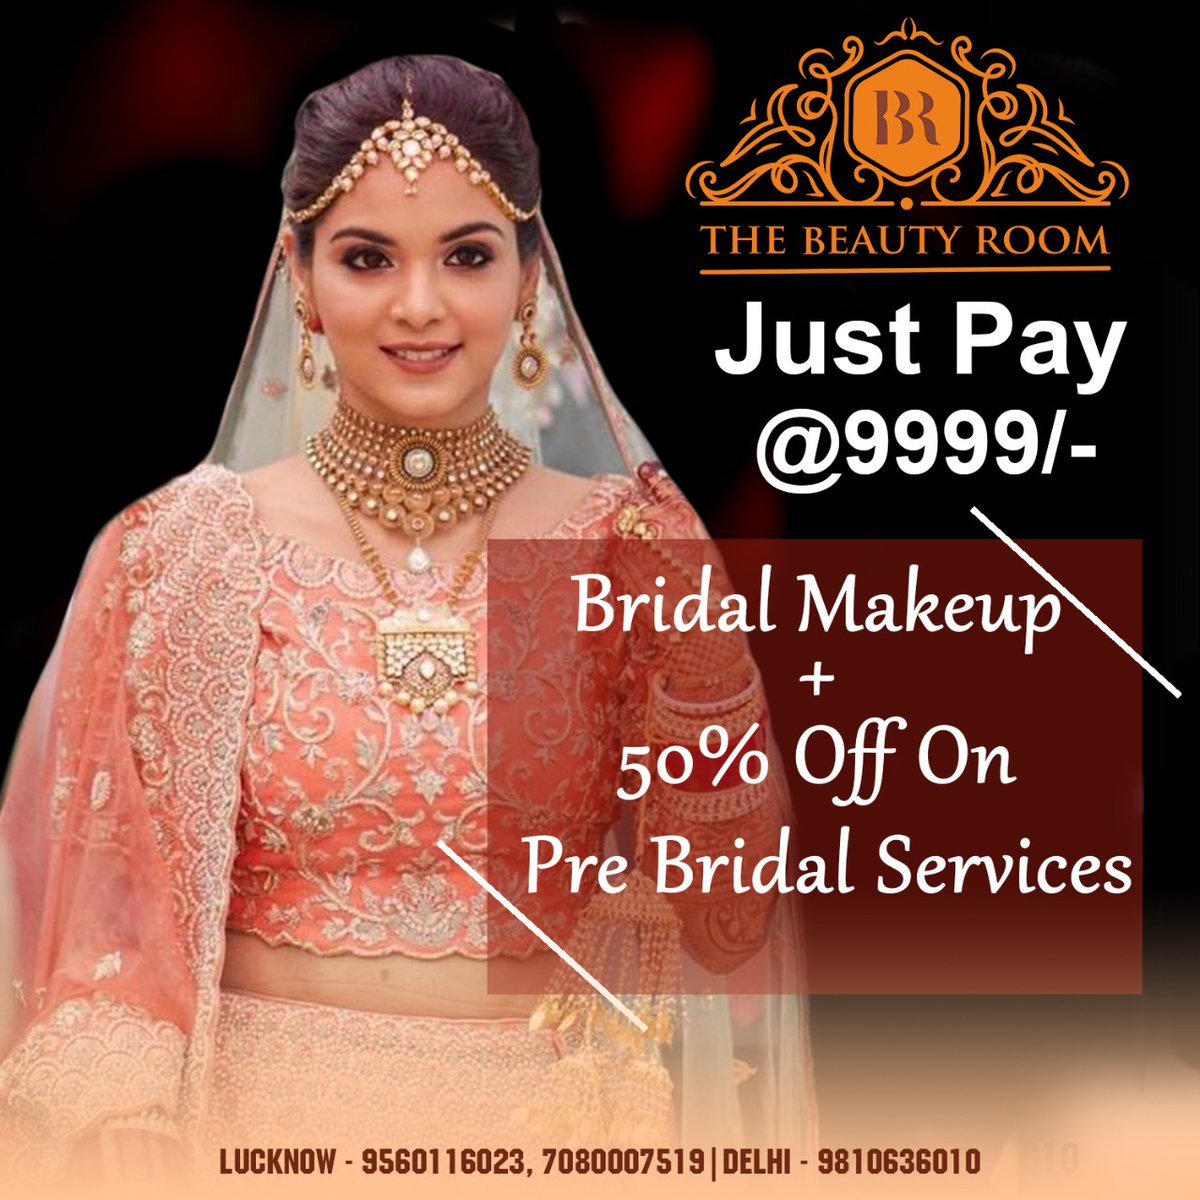 We make your dream to be the best bridal come true.  : : Bookings Open : Lucknow - 9560116023, 7080007519 Delhi - 9810636010 : : #bridalhair #wedding #weddingmakeup #makeup #salonservices #minimalistic #makeup #hair #nails #beauty #bestmakeupartist #india #beautybloggerpic.twitter.com/UpbBxdDzfa